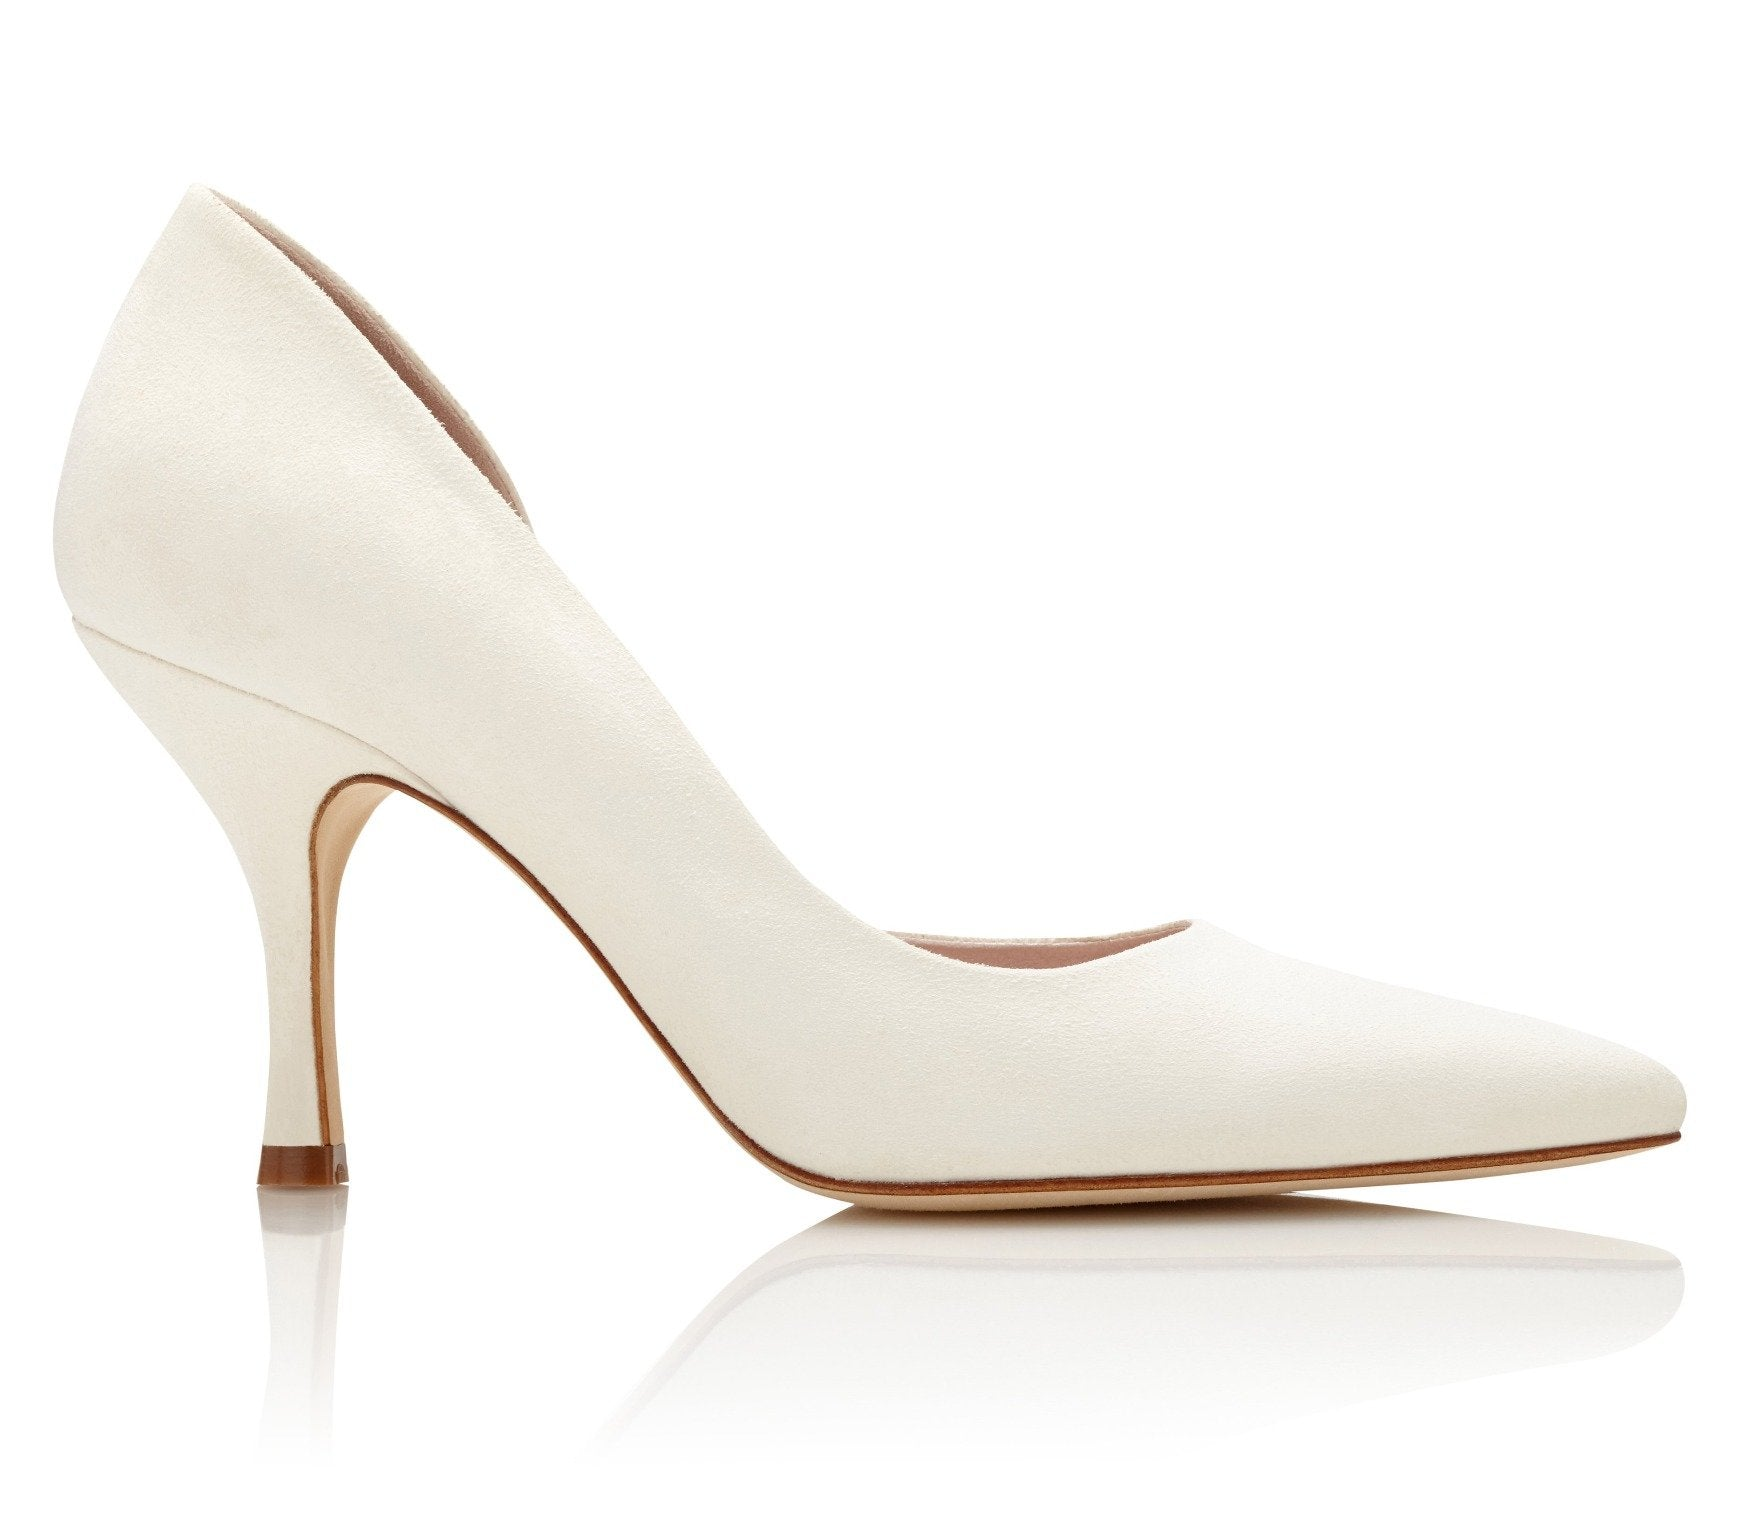 Amelia Ivory - Bridal Shoes - Suede Half D'Orsay Shape - Emmy London